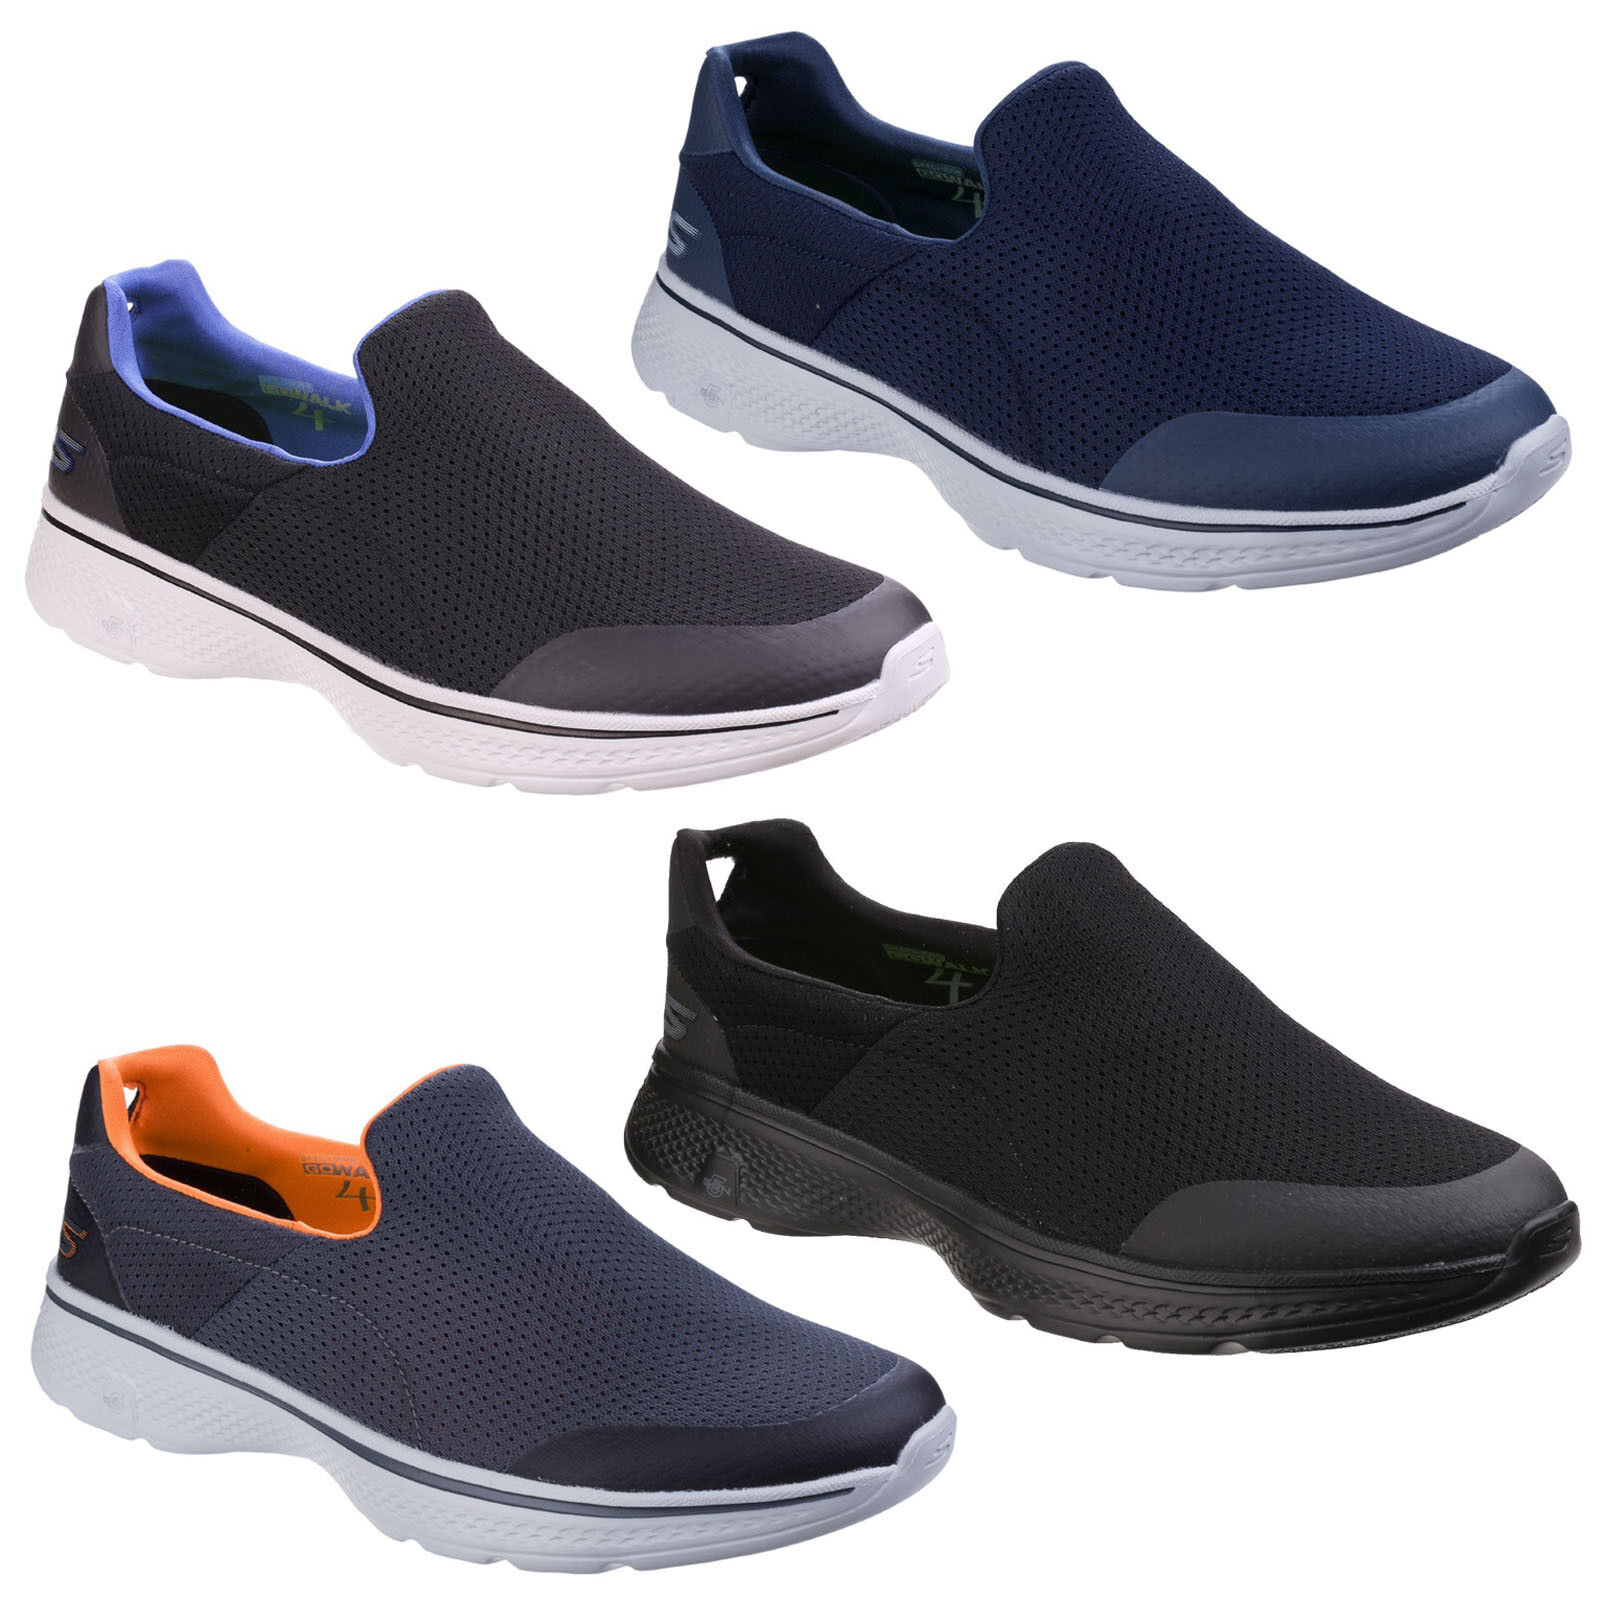 Details about Skechers Go Walk 4 Incredible Trainers Mens Summer Slip On